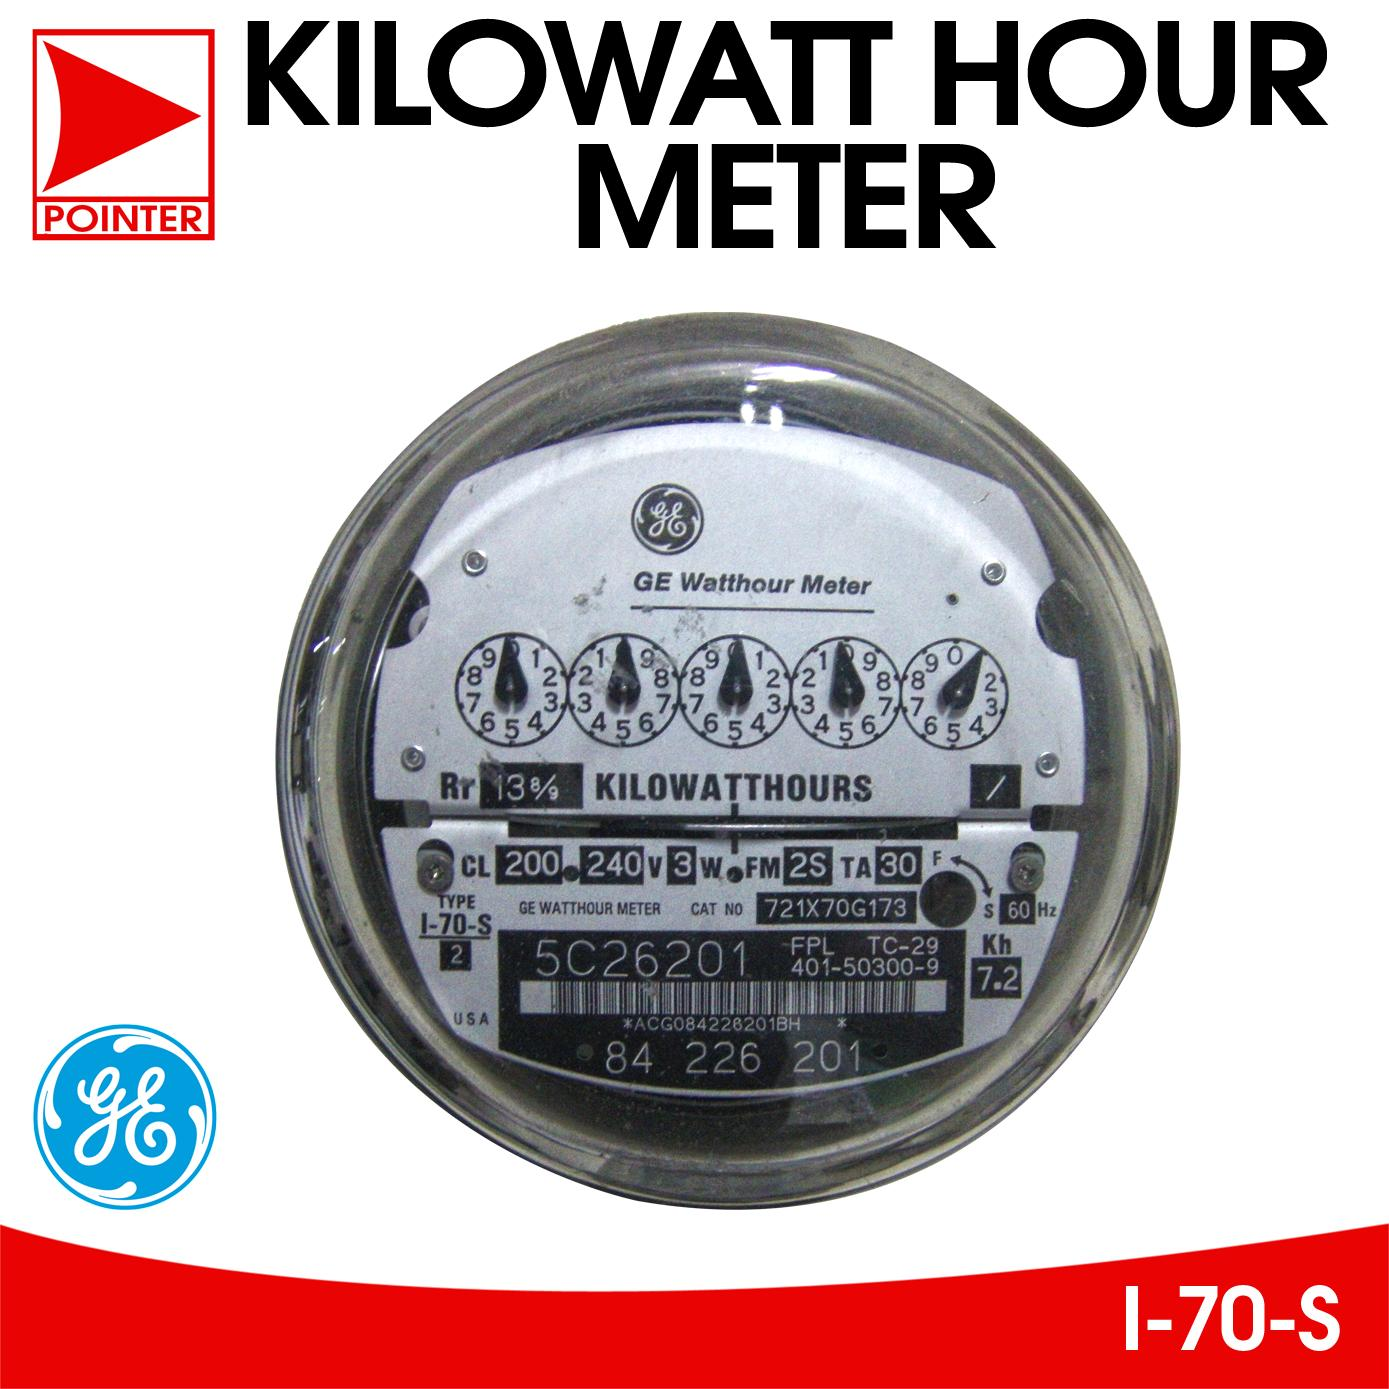 General Electric 3w, 30A, Electric Kilowatt Hour Meter